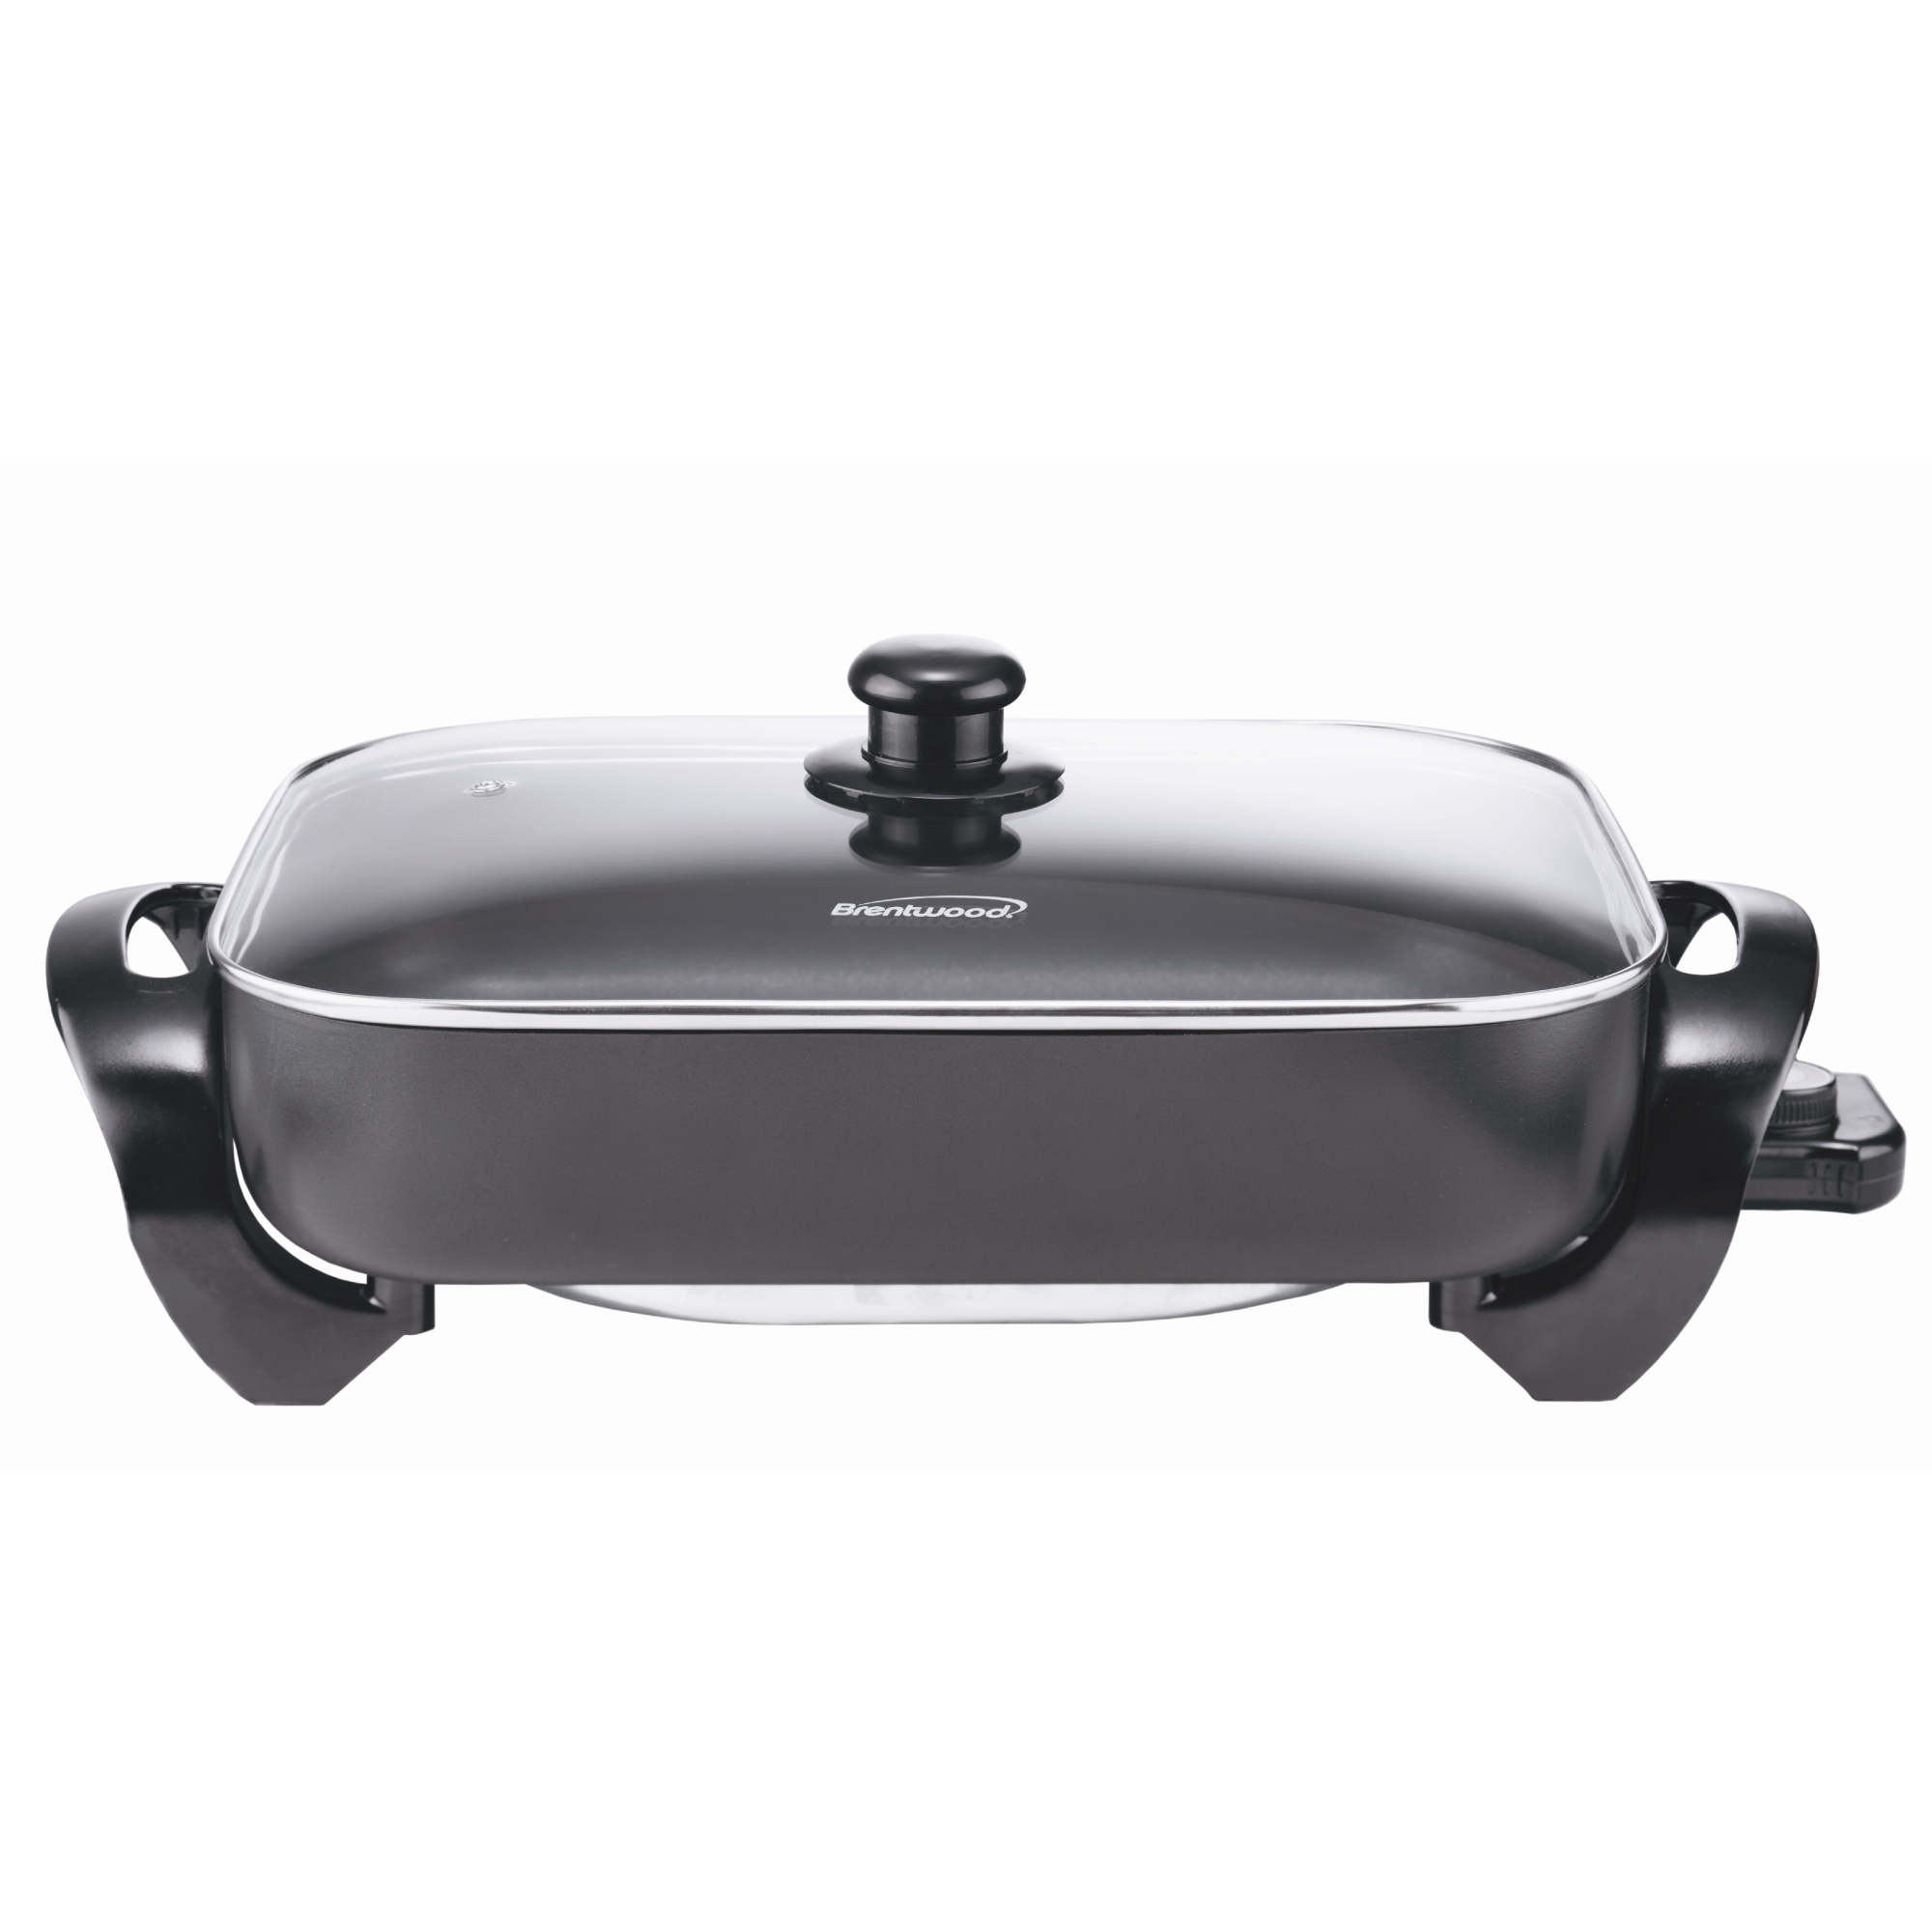 Brentwood 16-Inch 1400-Watts Electric Skillet with Glass Lid